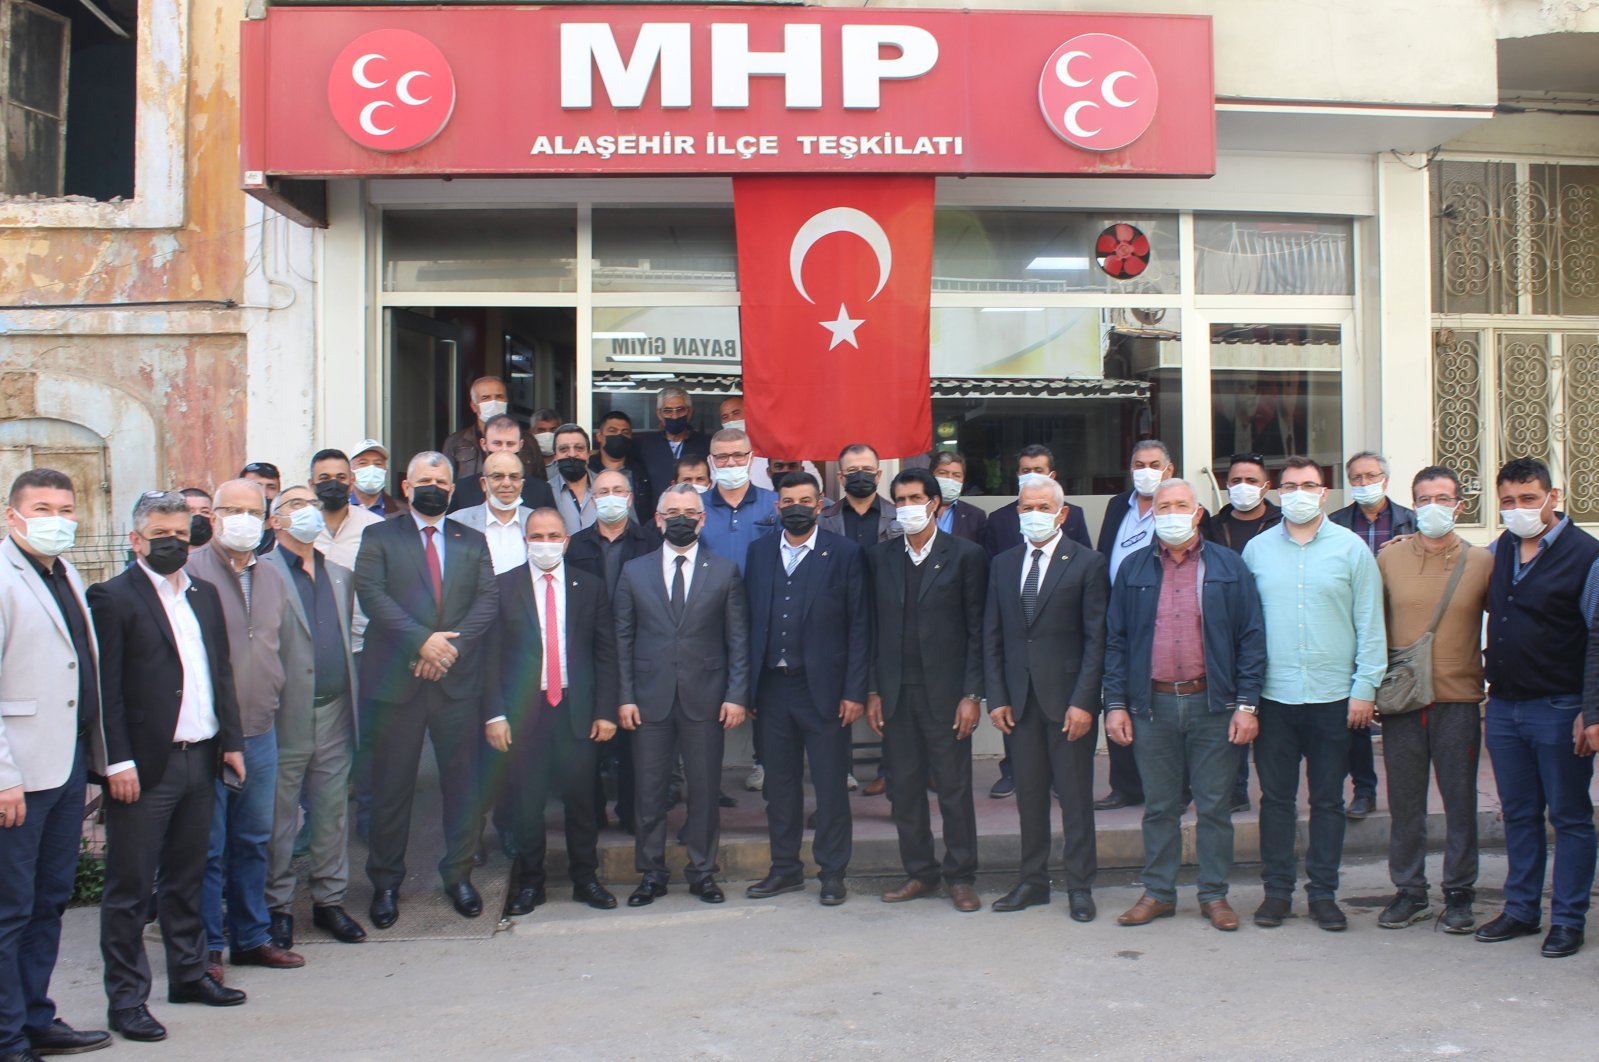 Resigned Good Party (IP) members pose with the local Nationalist Movement Party (MHP) organization in western Manisa province, Turkey, April 28, 2021. (AA Photo)